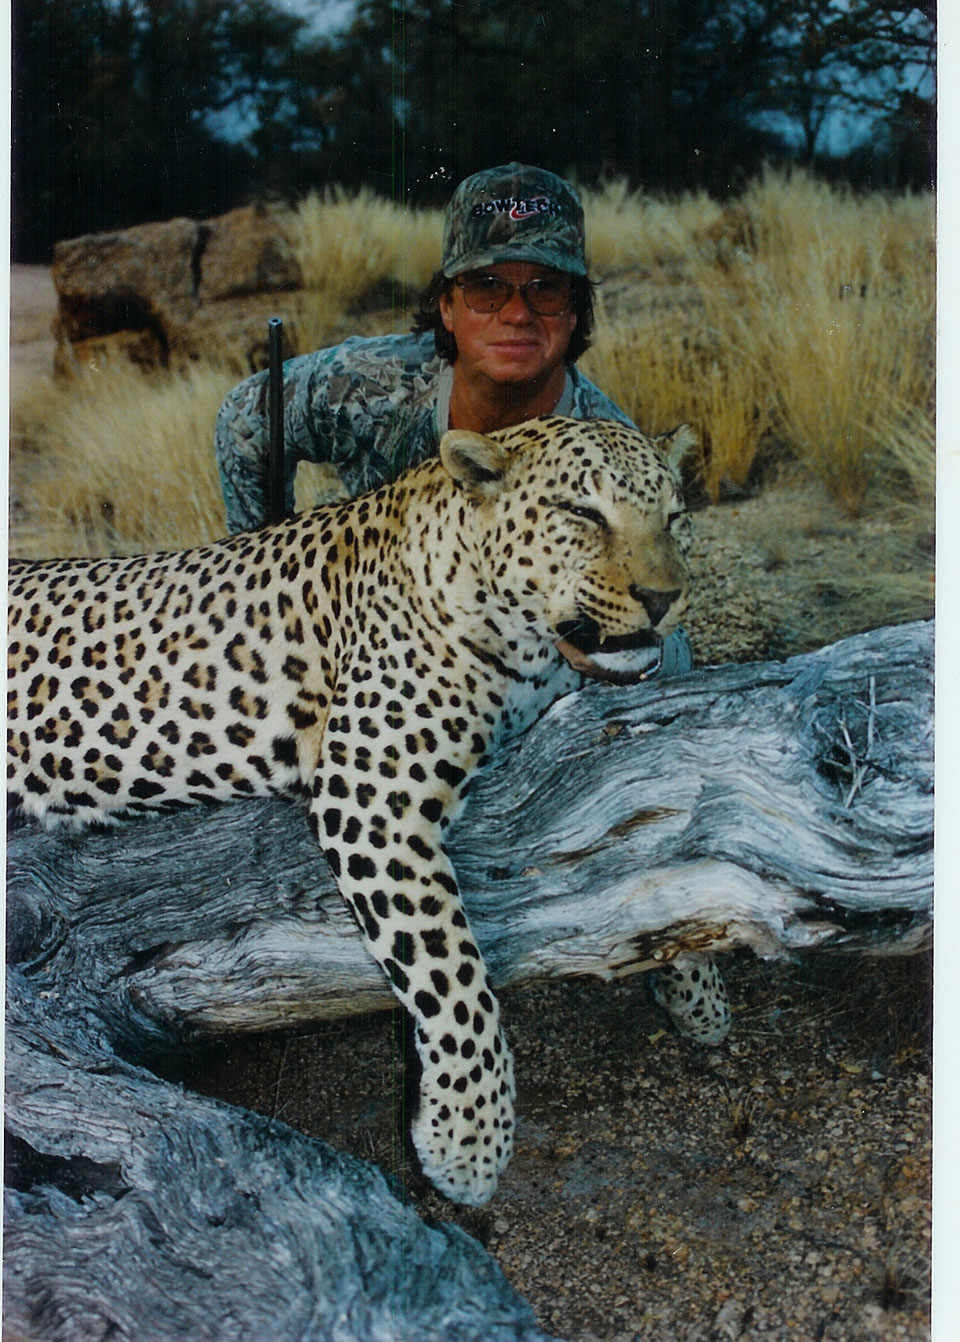 trophy-leopard-photos-Namibia-Africa.jpg